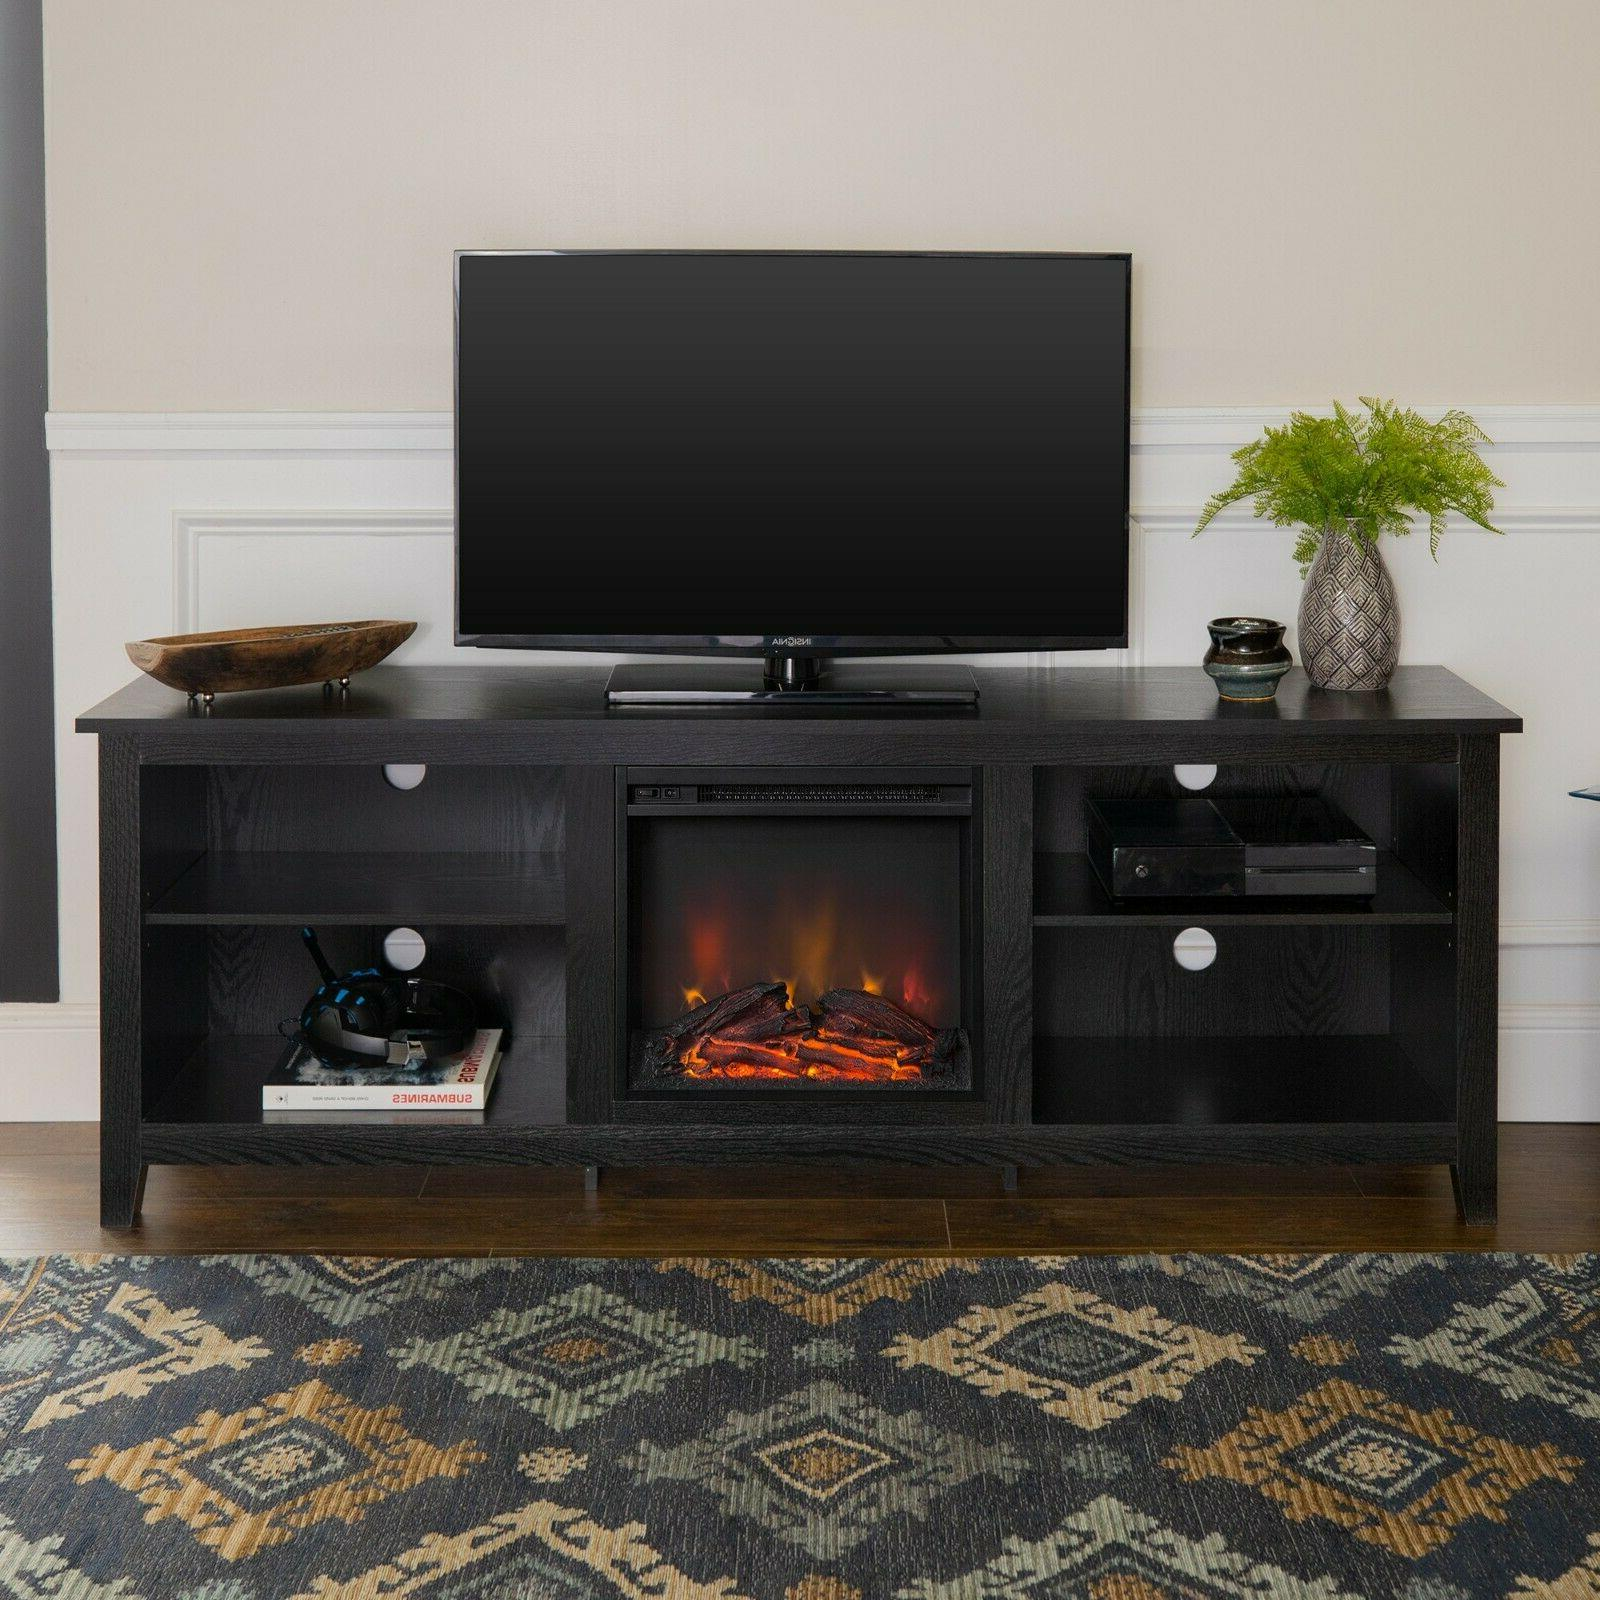 FIREPLACE ELECTRIC 75 Inch Television Media Entertainment